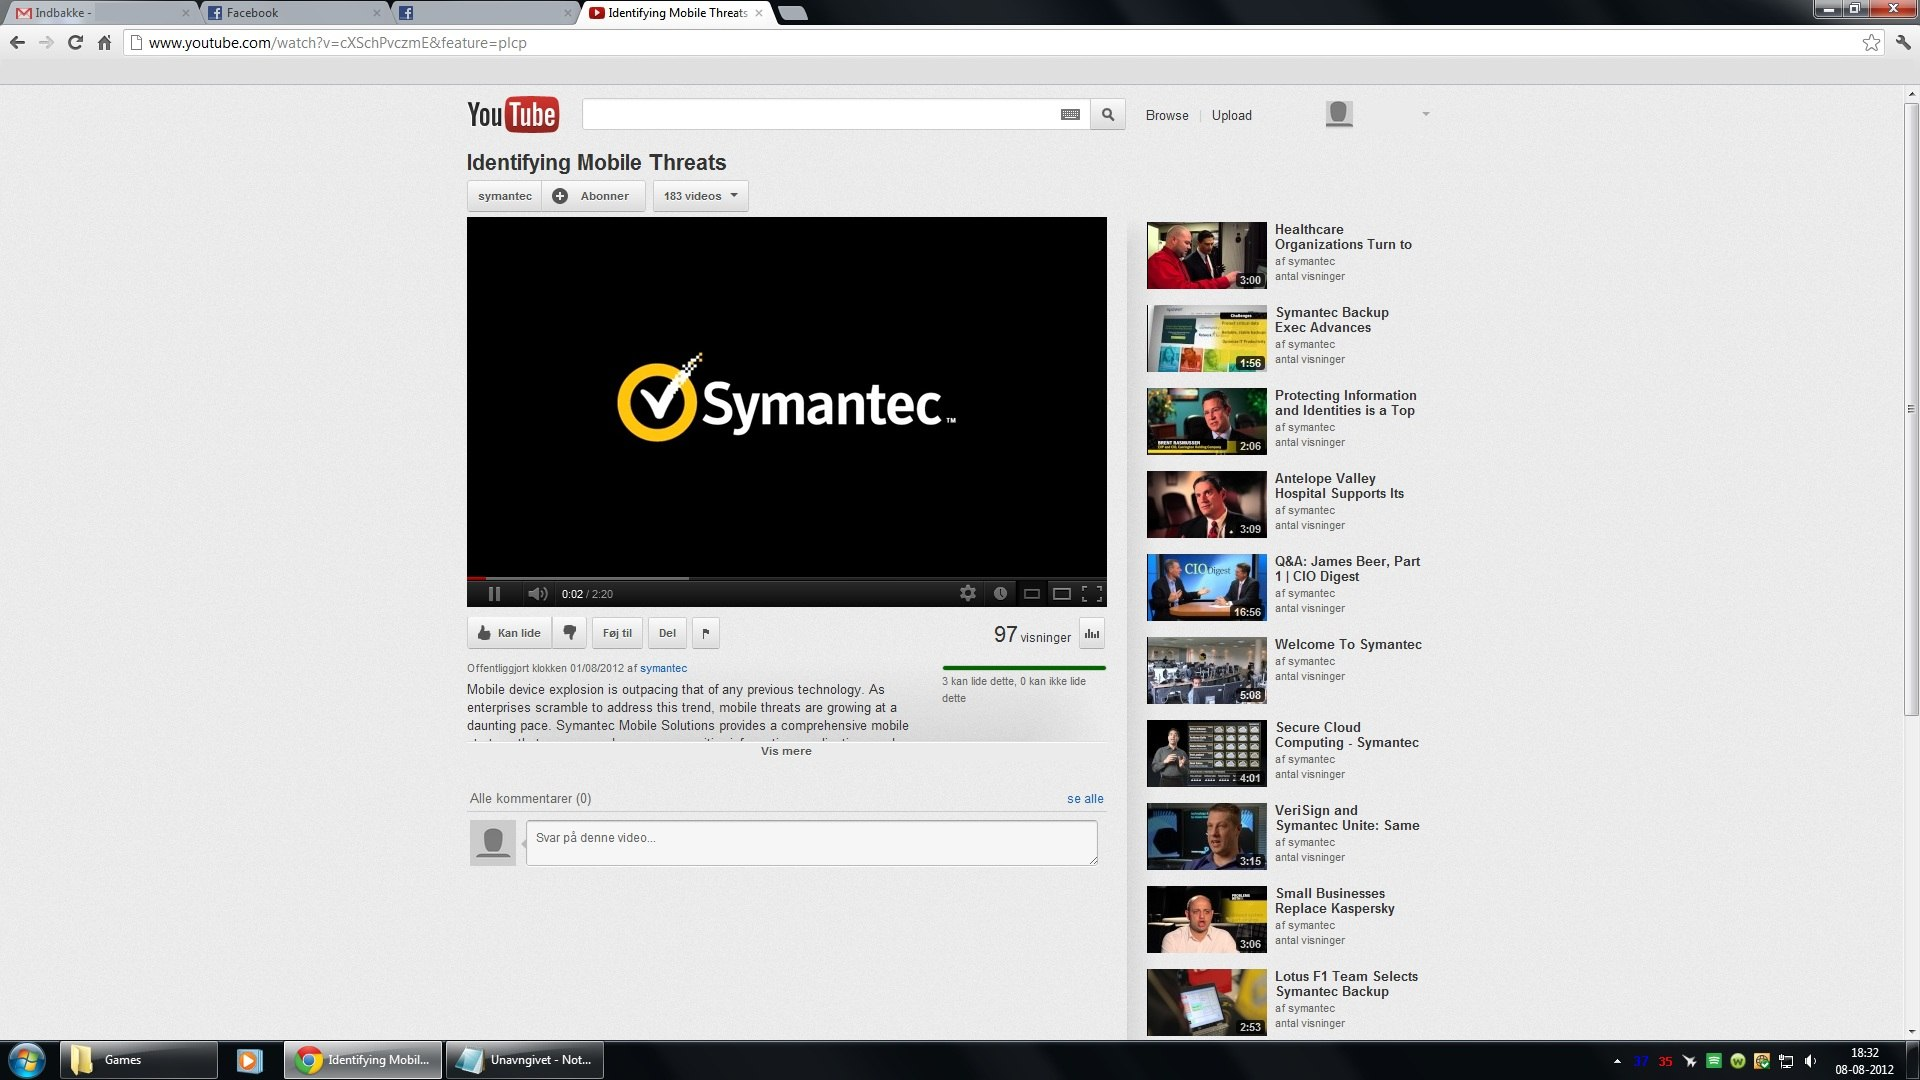 youtube is not working on google chrome